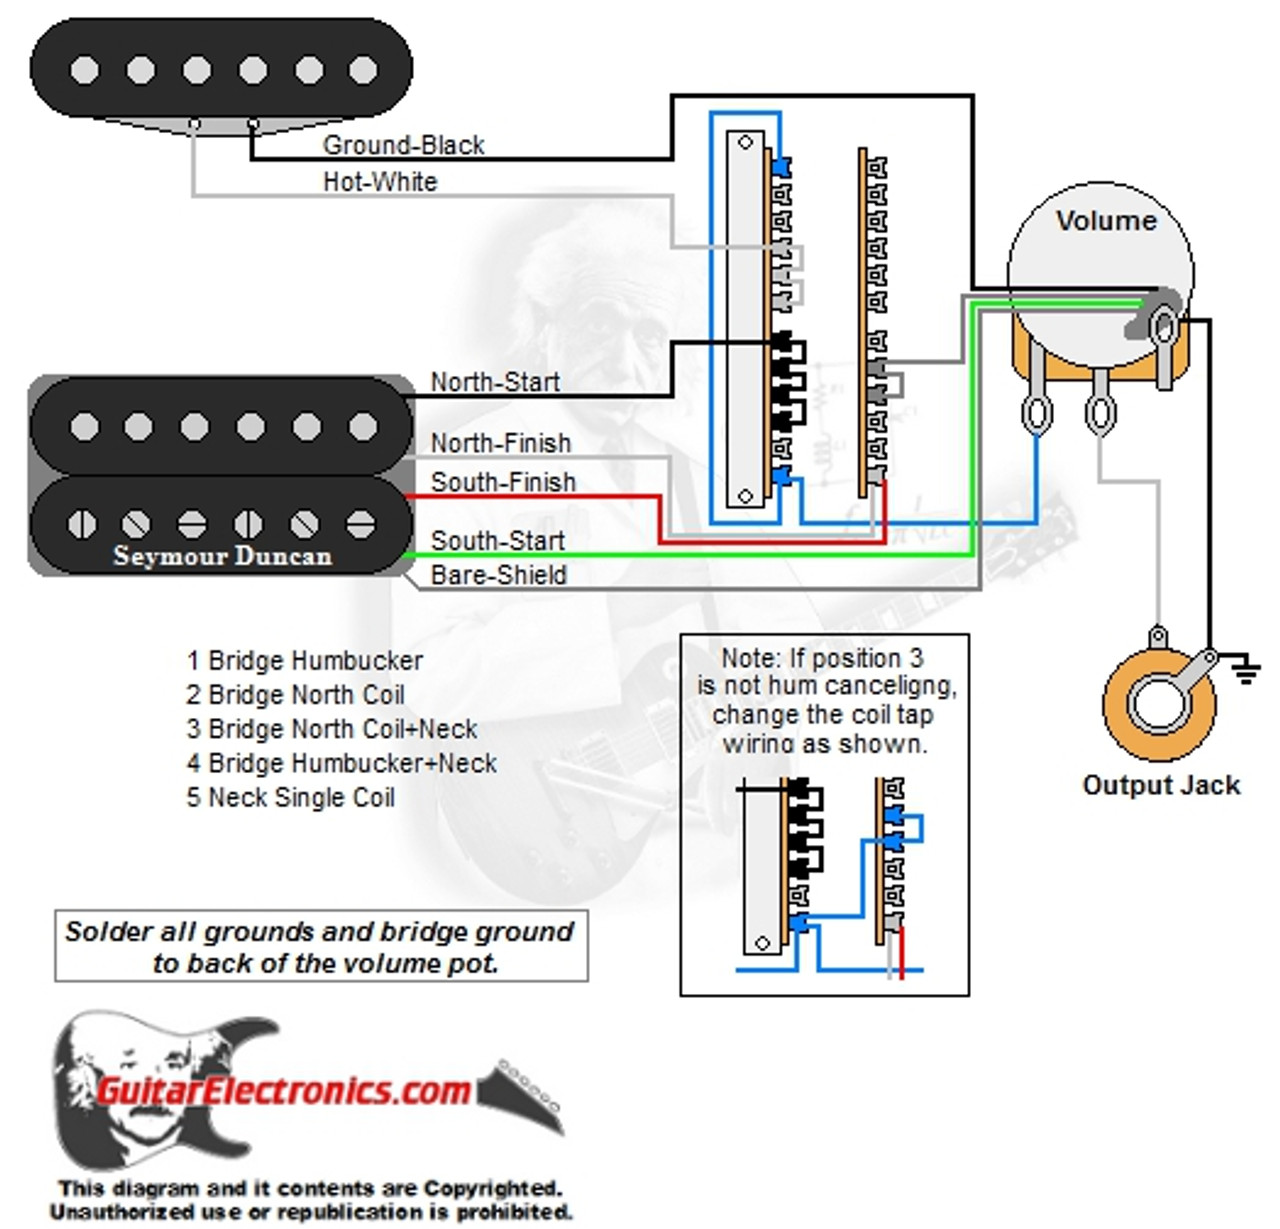 hight resolution of 1 humbucker 1 single coil 5 way lever switch 1 volume 01 wiring diagram for bridge humbucker single coil in neck telecaster